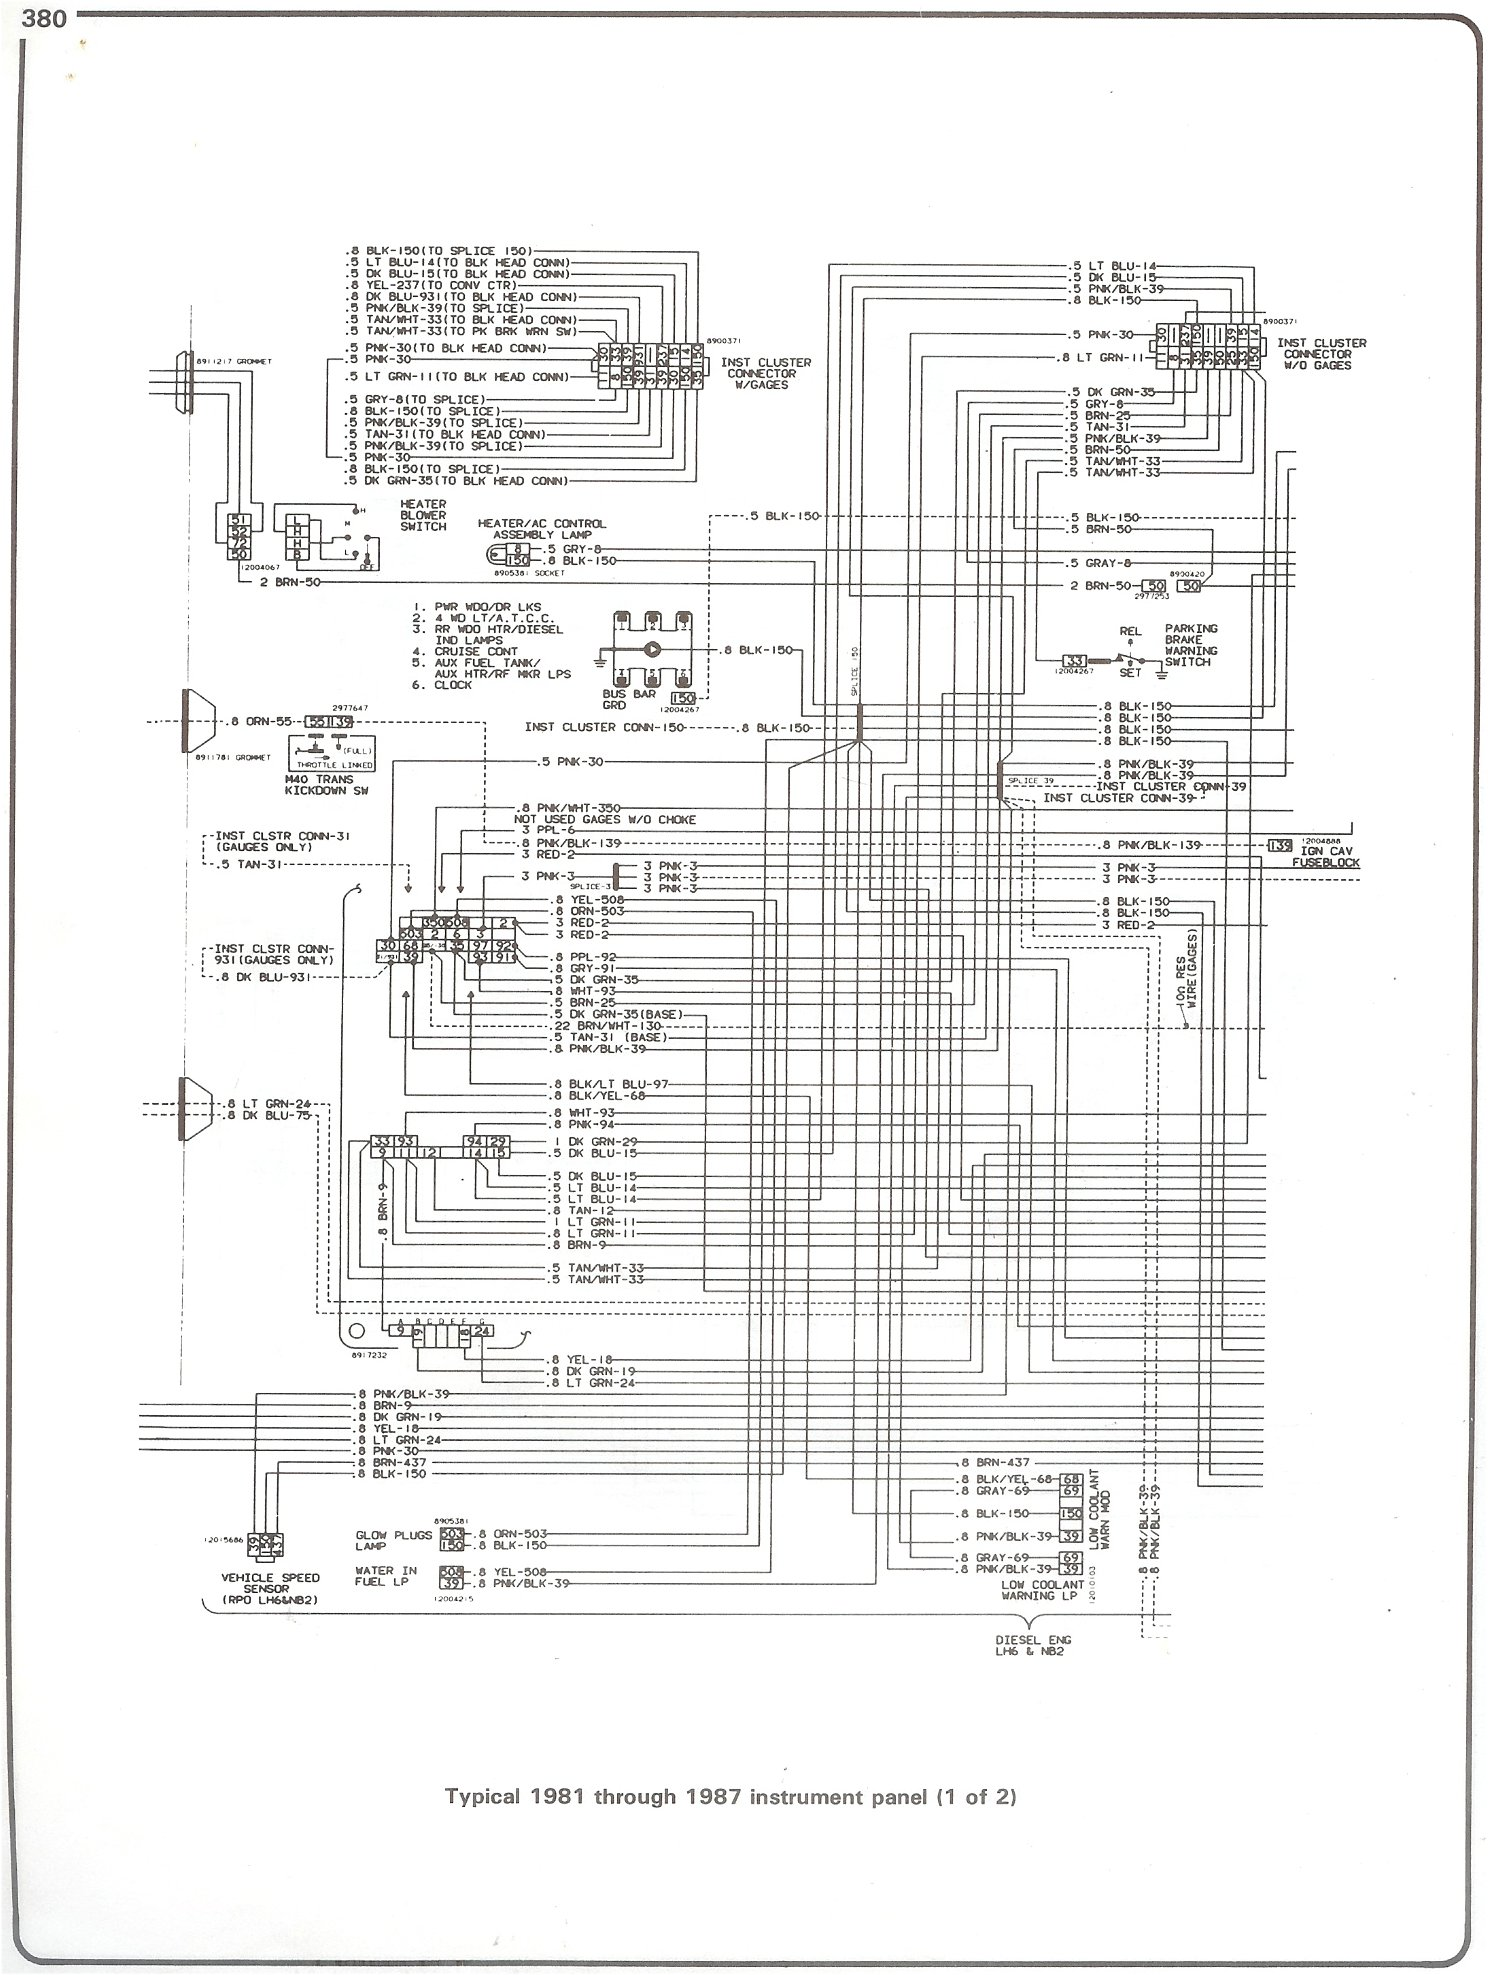 81 87_instrument_pg1 1984 chevy c10 wiring diagram 68 chevy c10 wiring diagram \u2022 wiring 68 gmc wiring diagram at bayanpartner.co